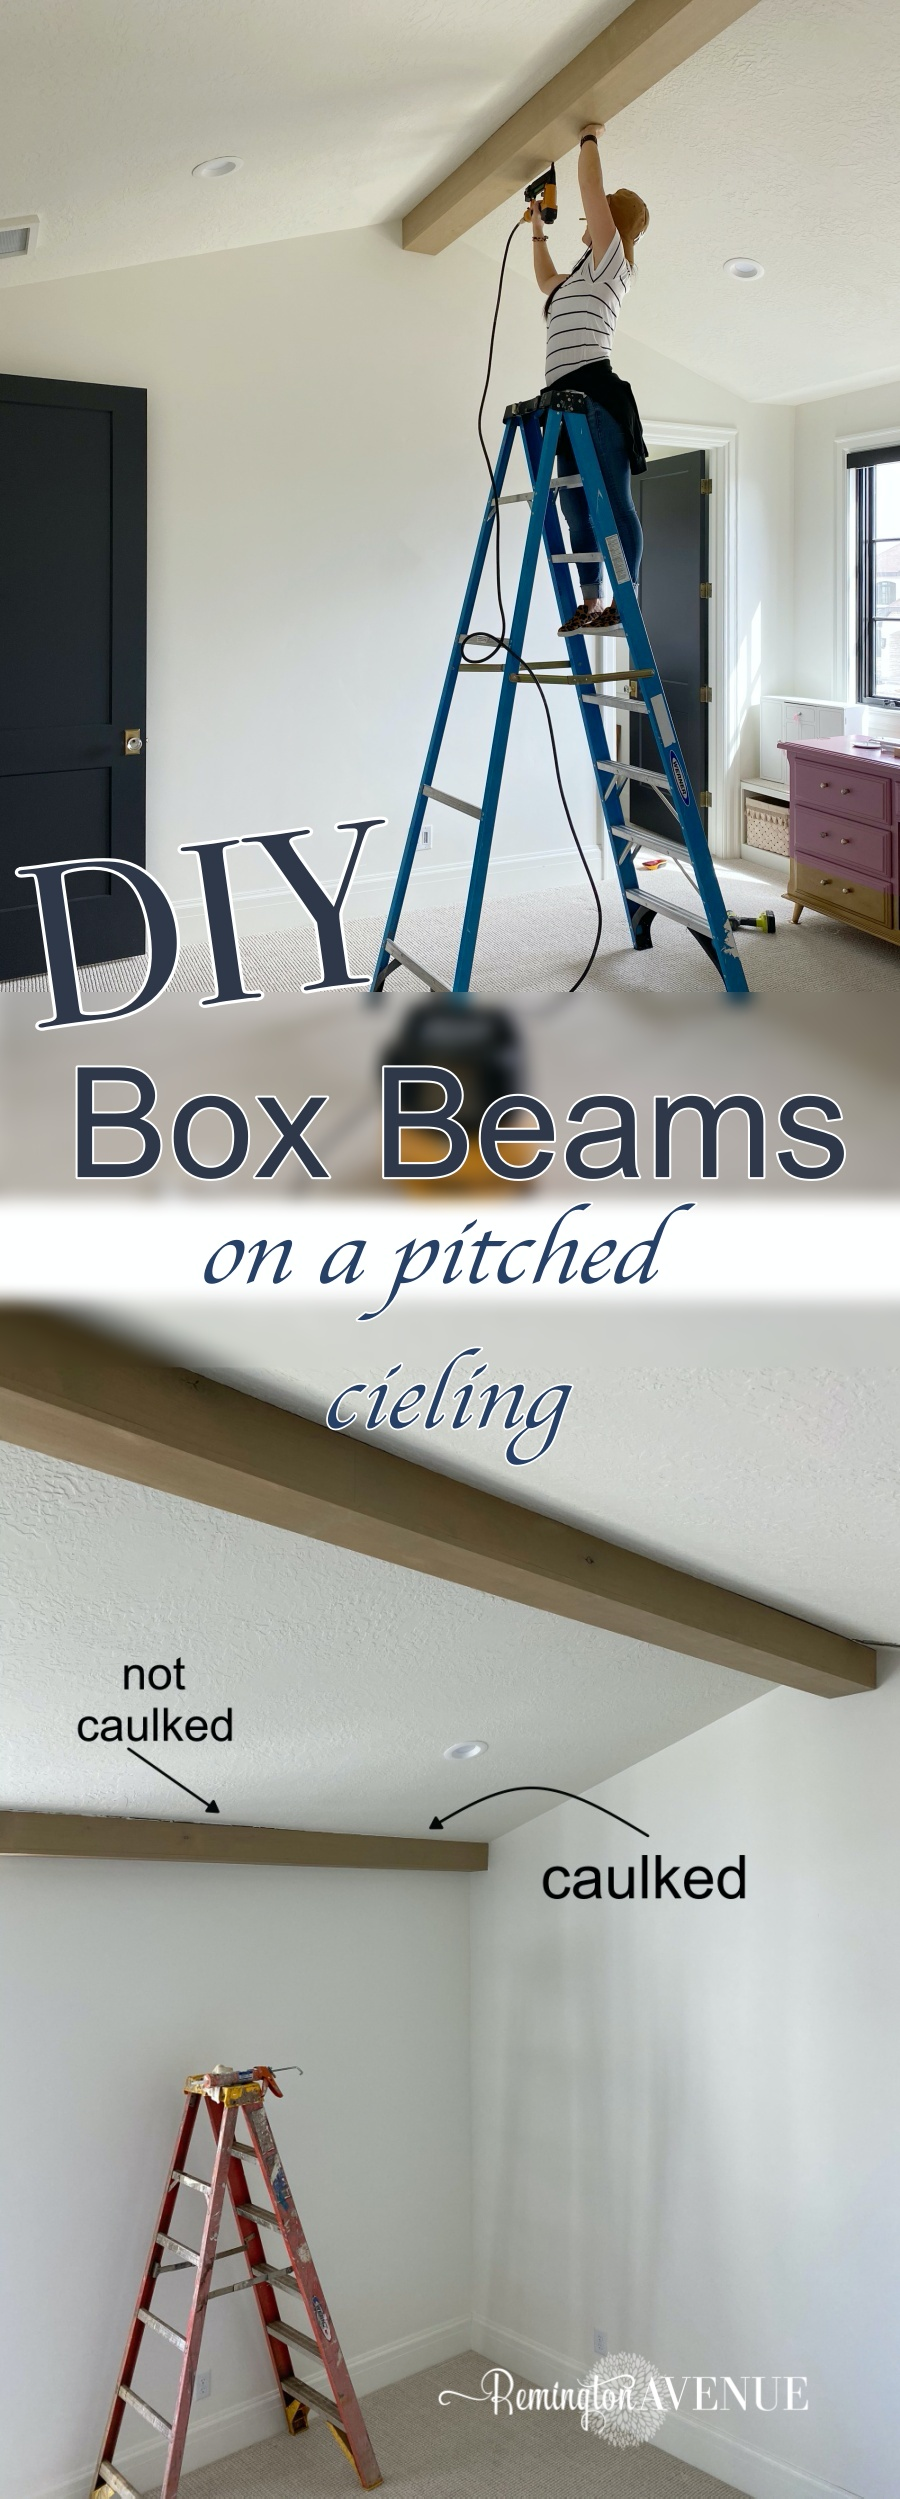 HOW TO BUILD BOX BEAMS ON A PITCHED CEILING